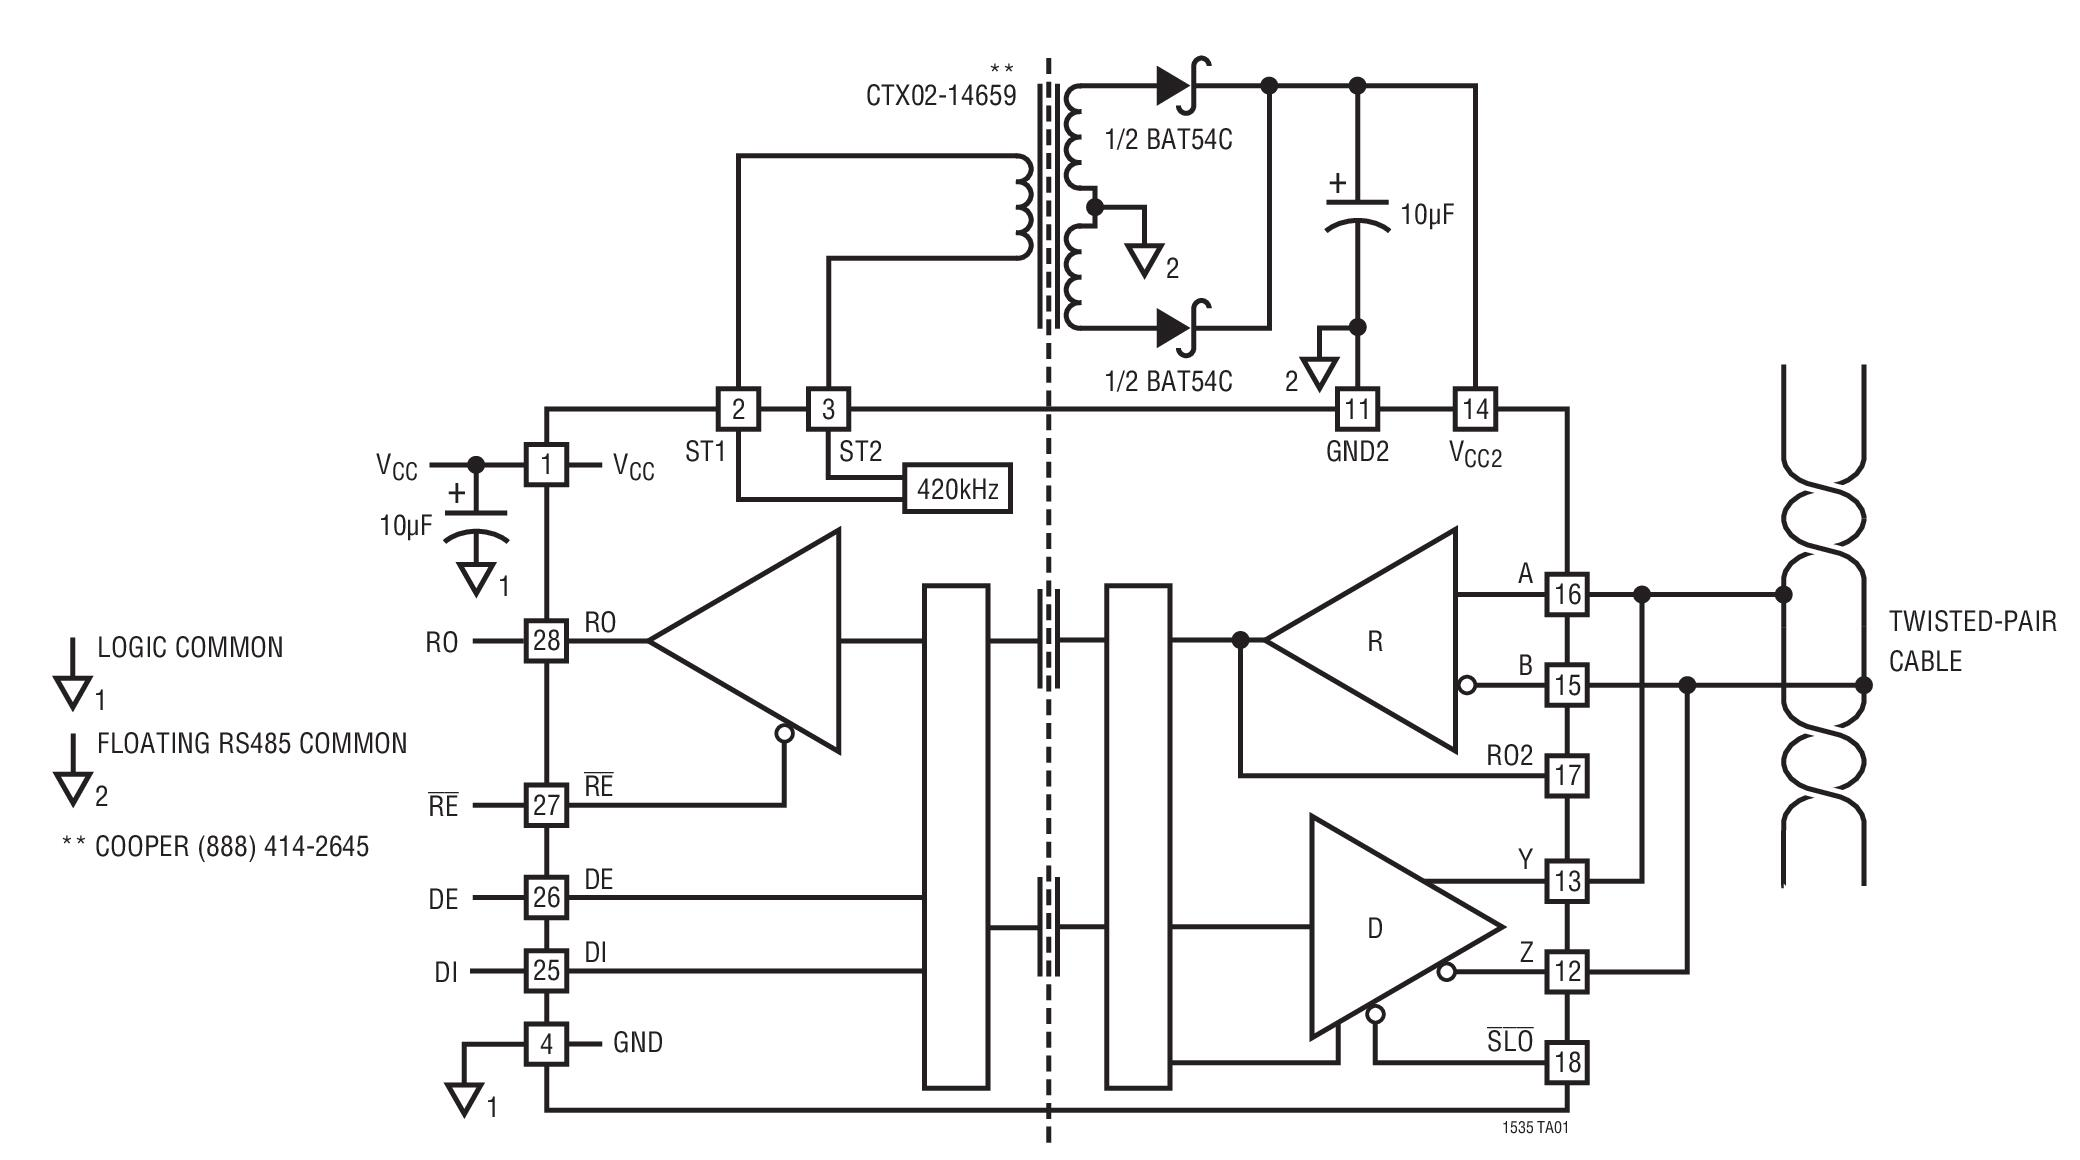 rs485 wiring 4 way switch diagram pdf ltc1535 typical application reference design rs 485